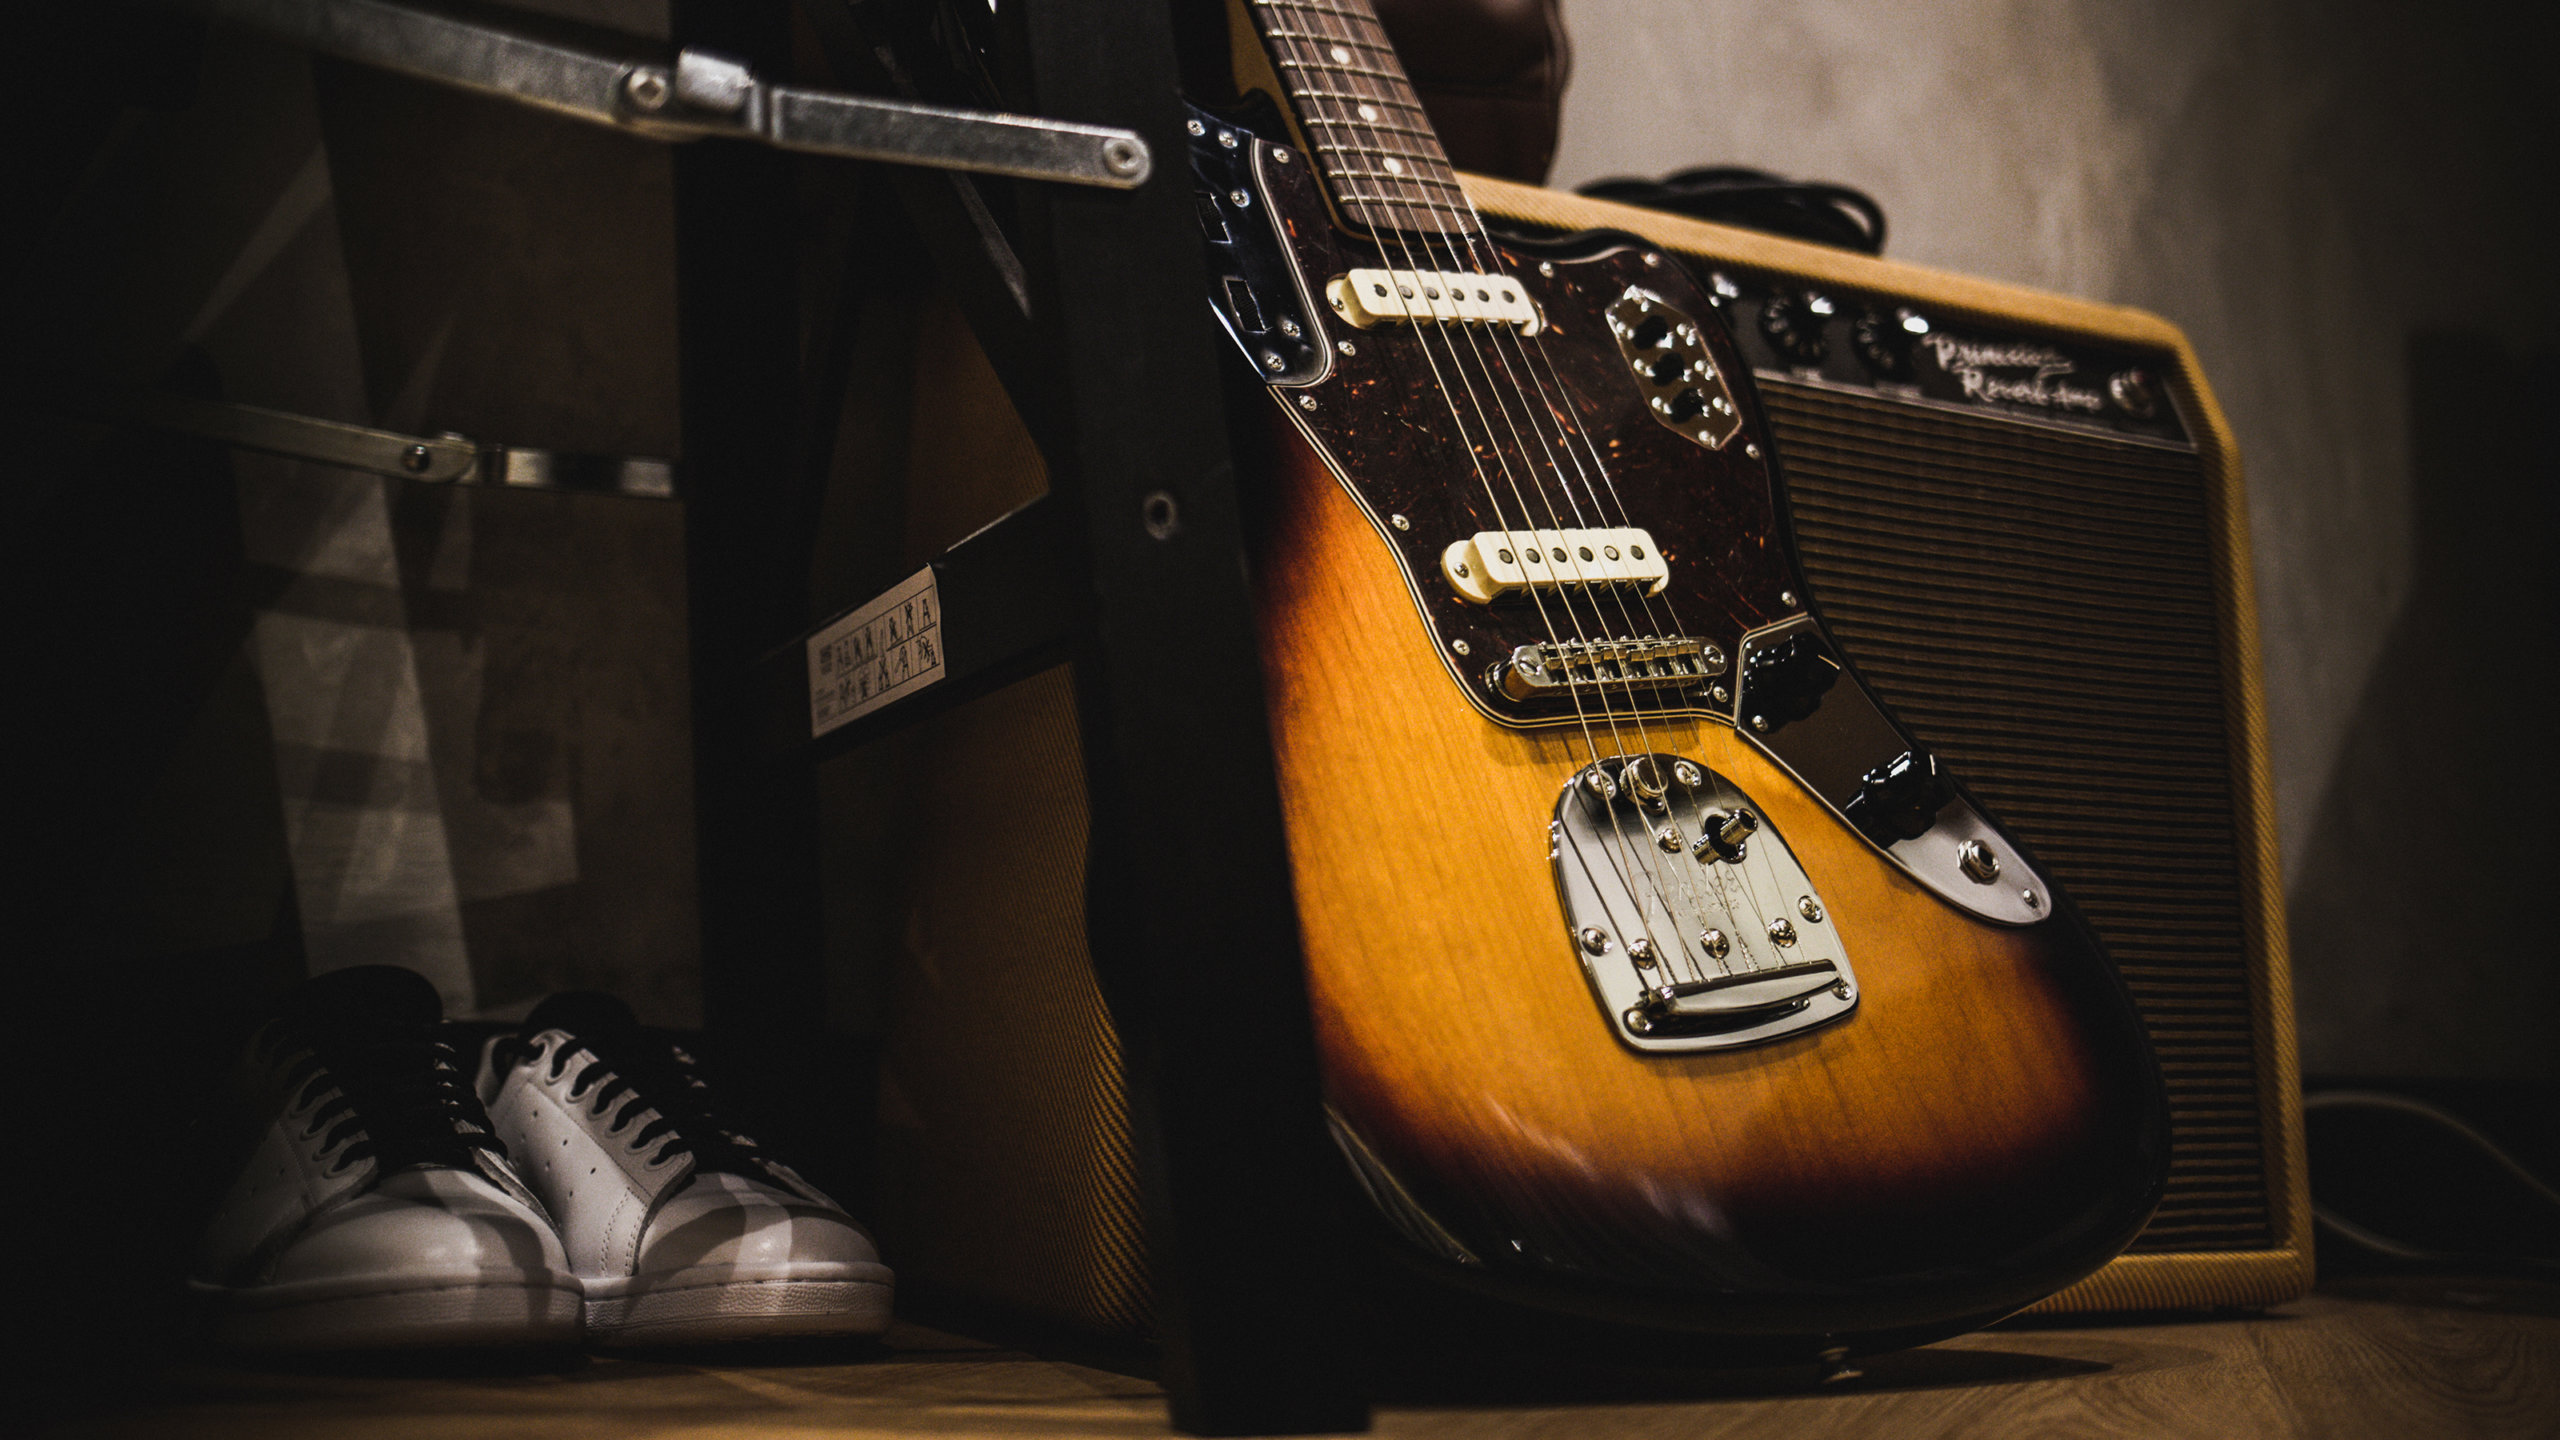 How to choose and buy an electric guitar